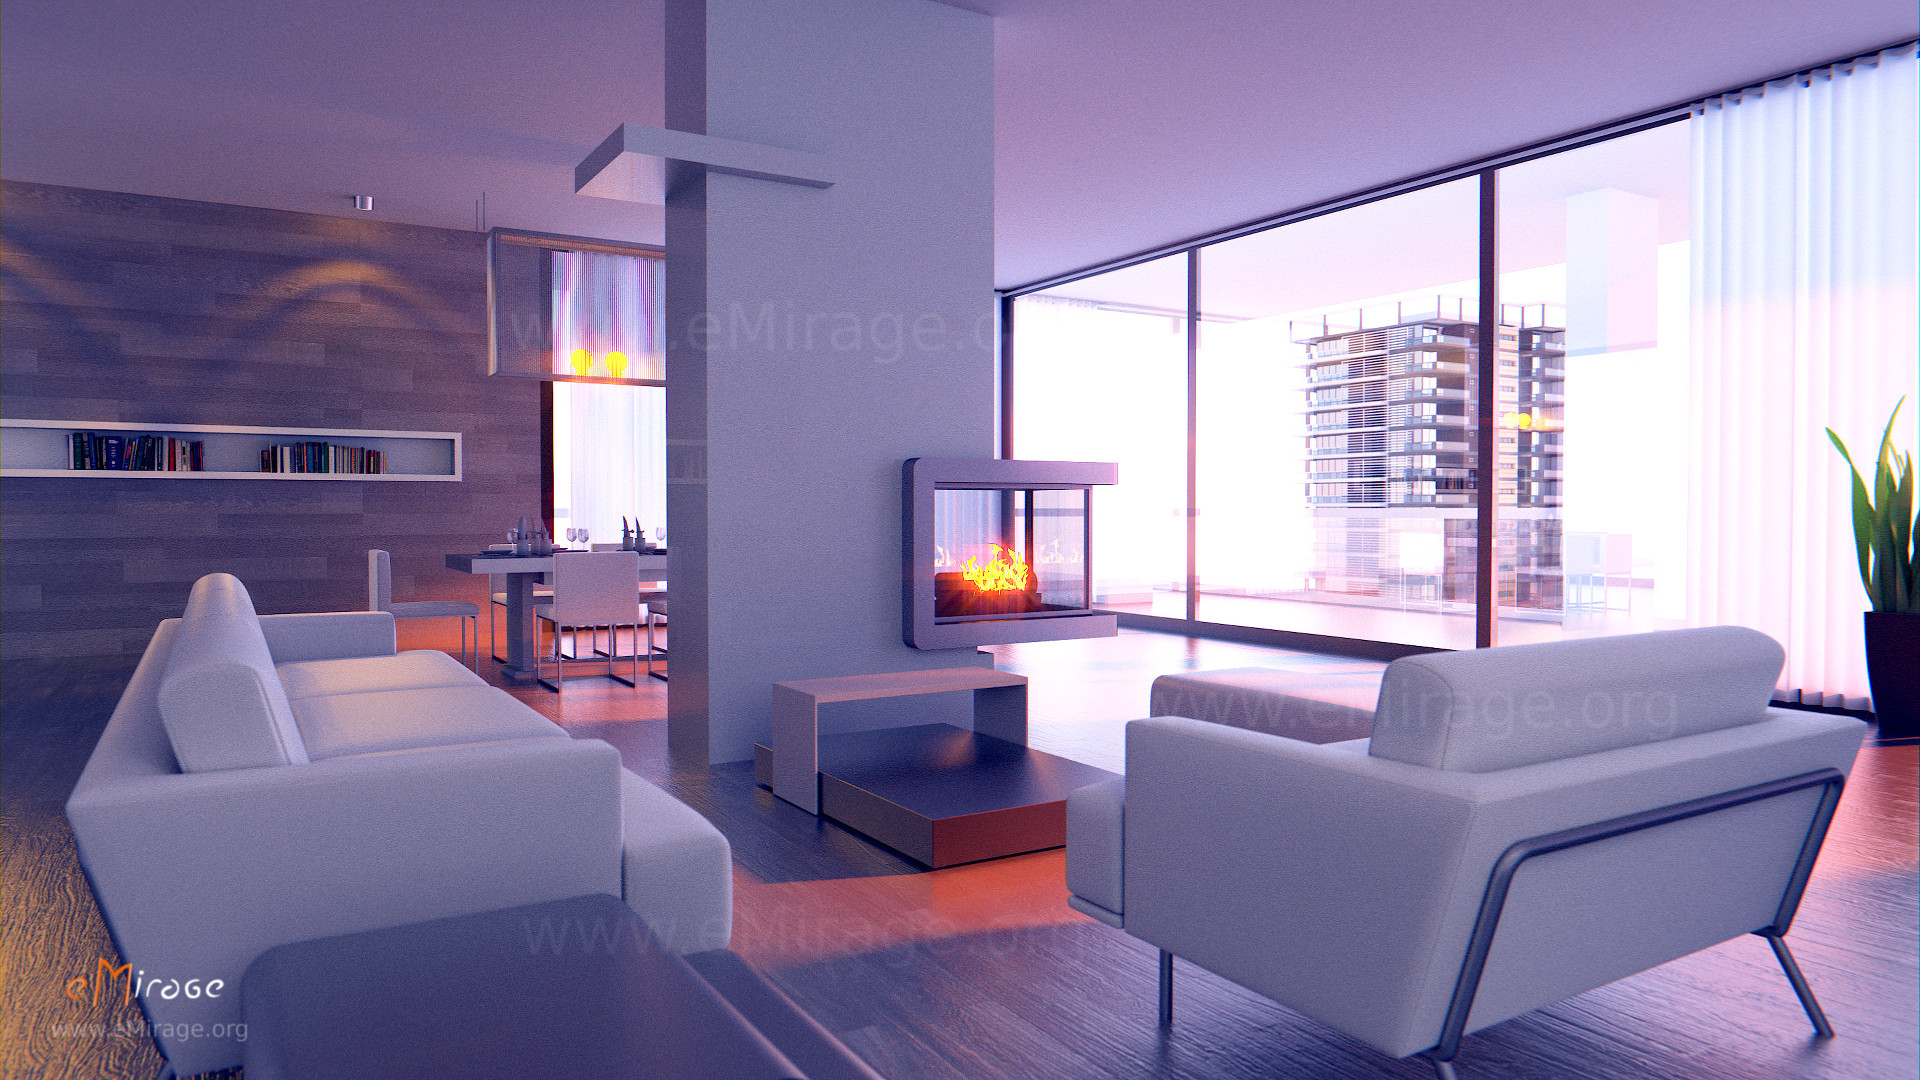 Blender Cycles In Action Archviz Rendering Emirage